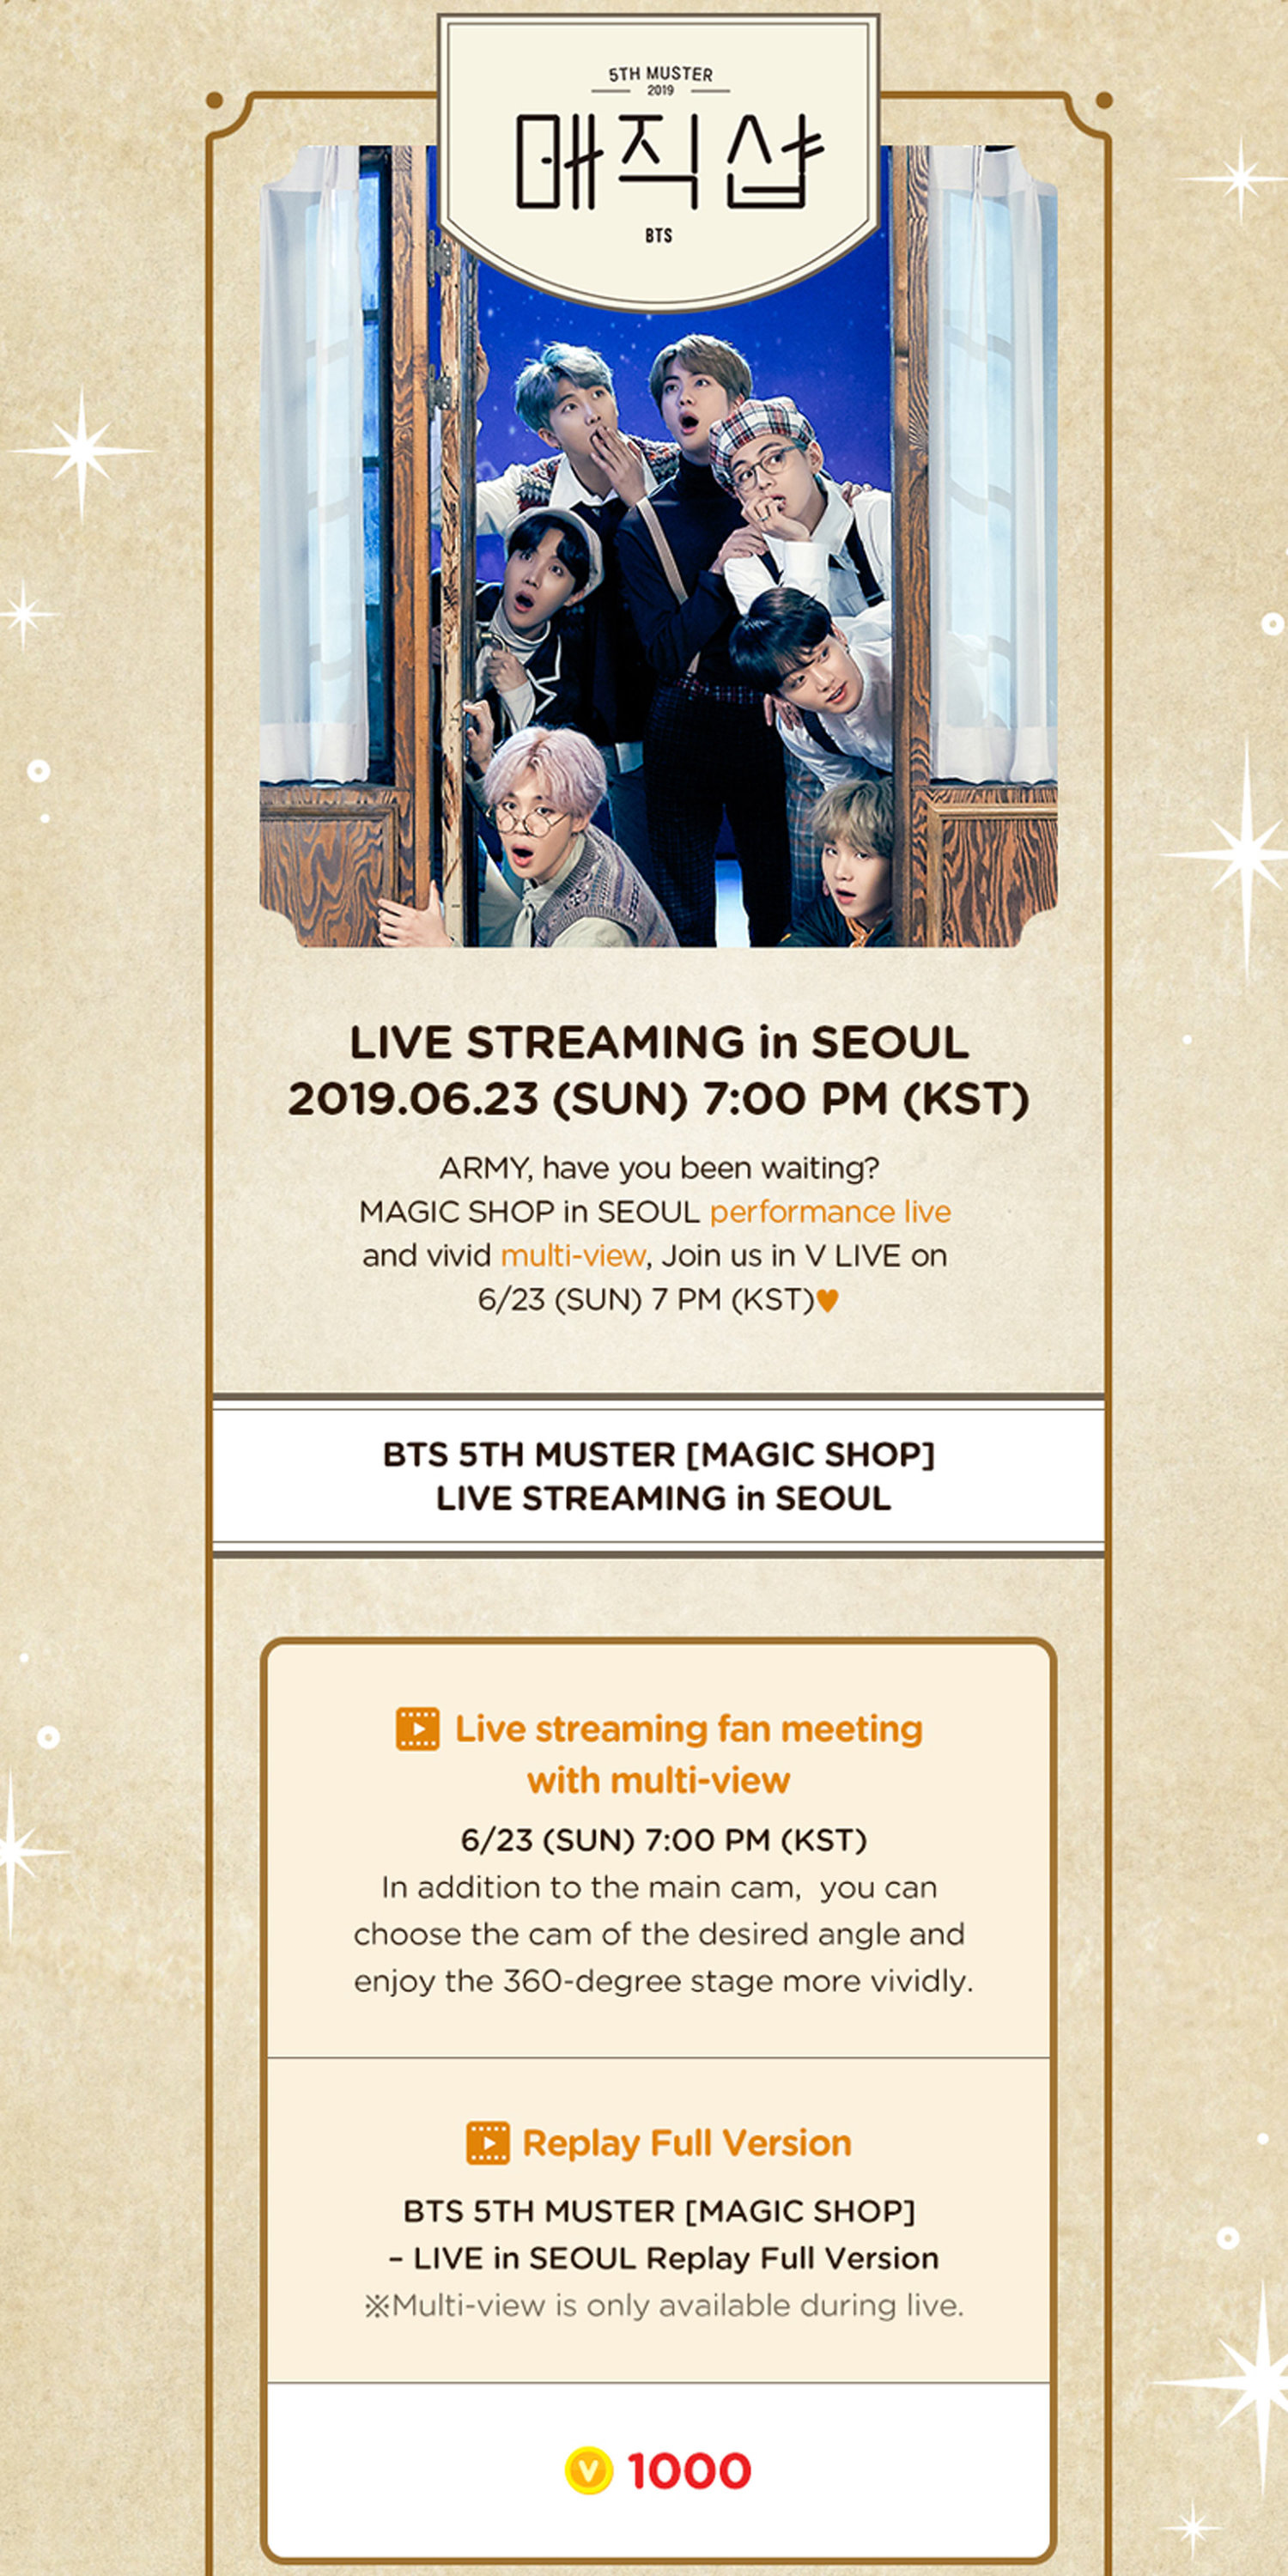 VLIVE+] BTS 5th MUSTER [MAGIC SHOP] LIVE STREAMING — US BTS ARMY